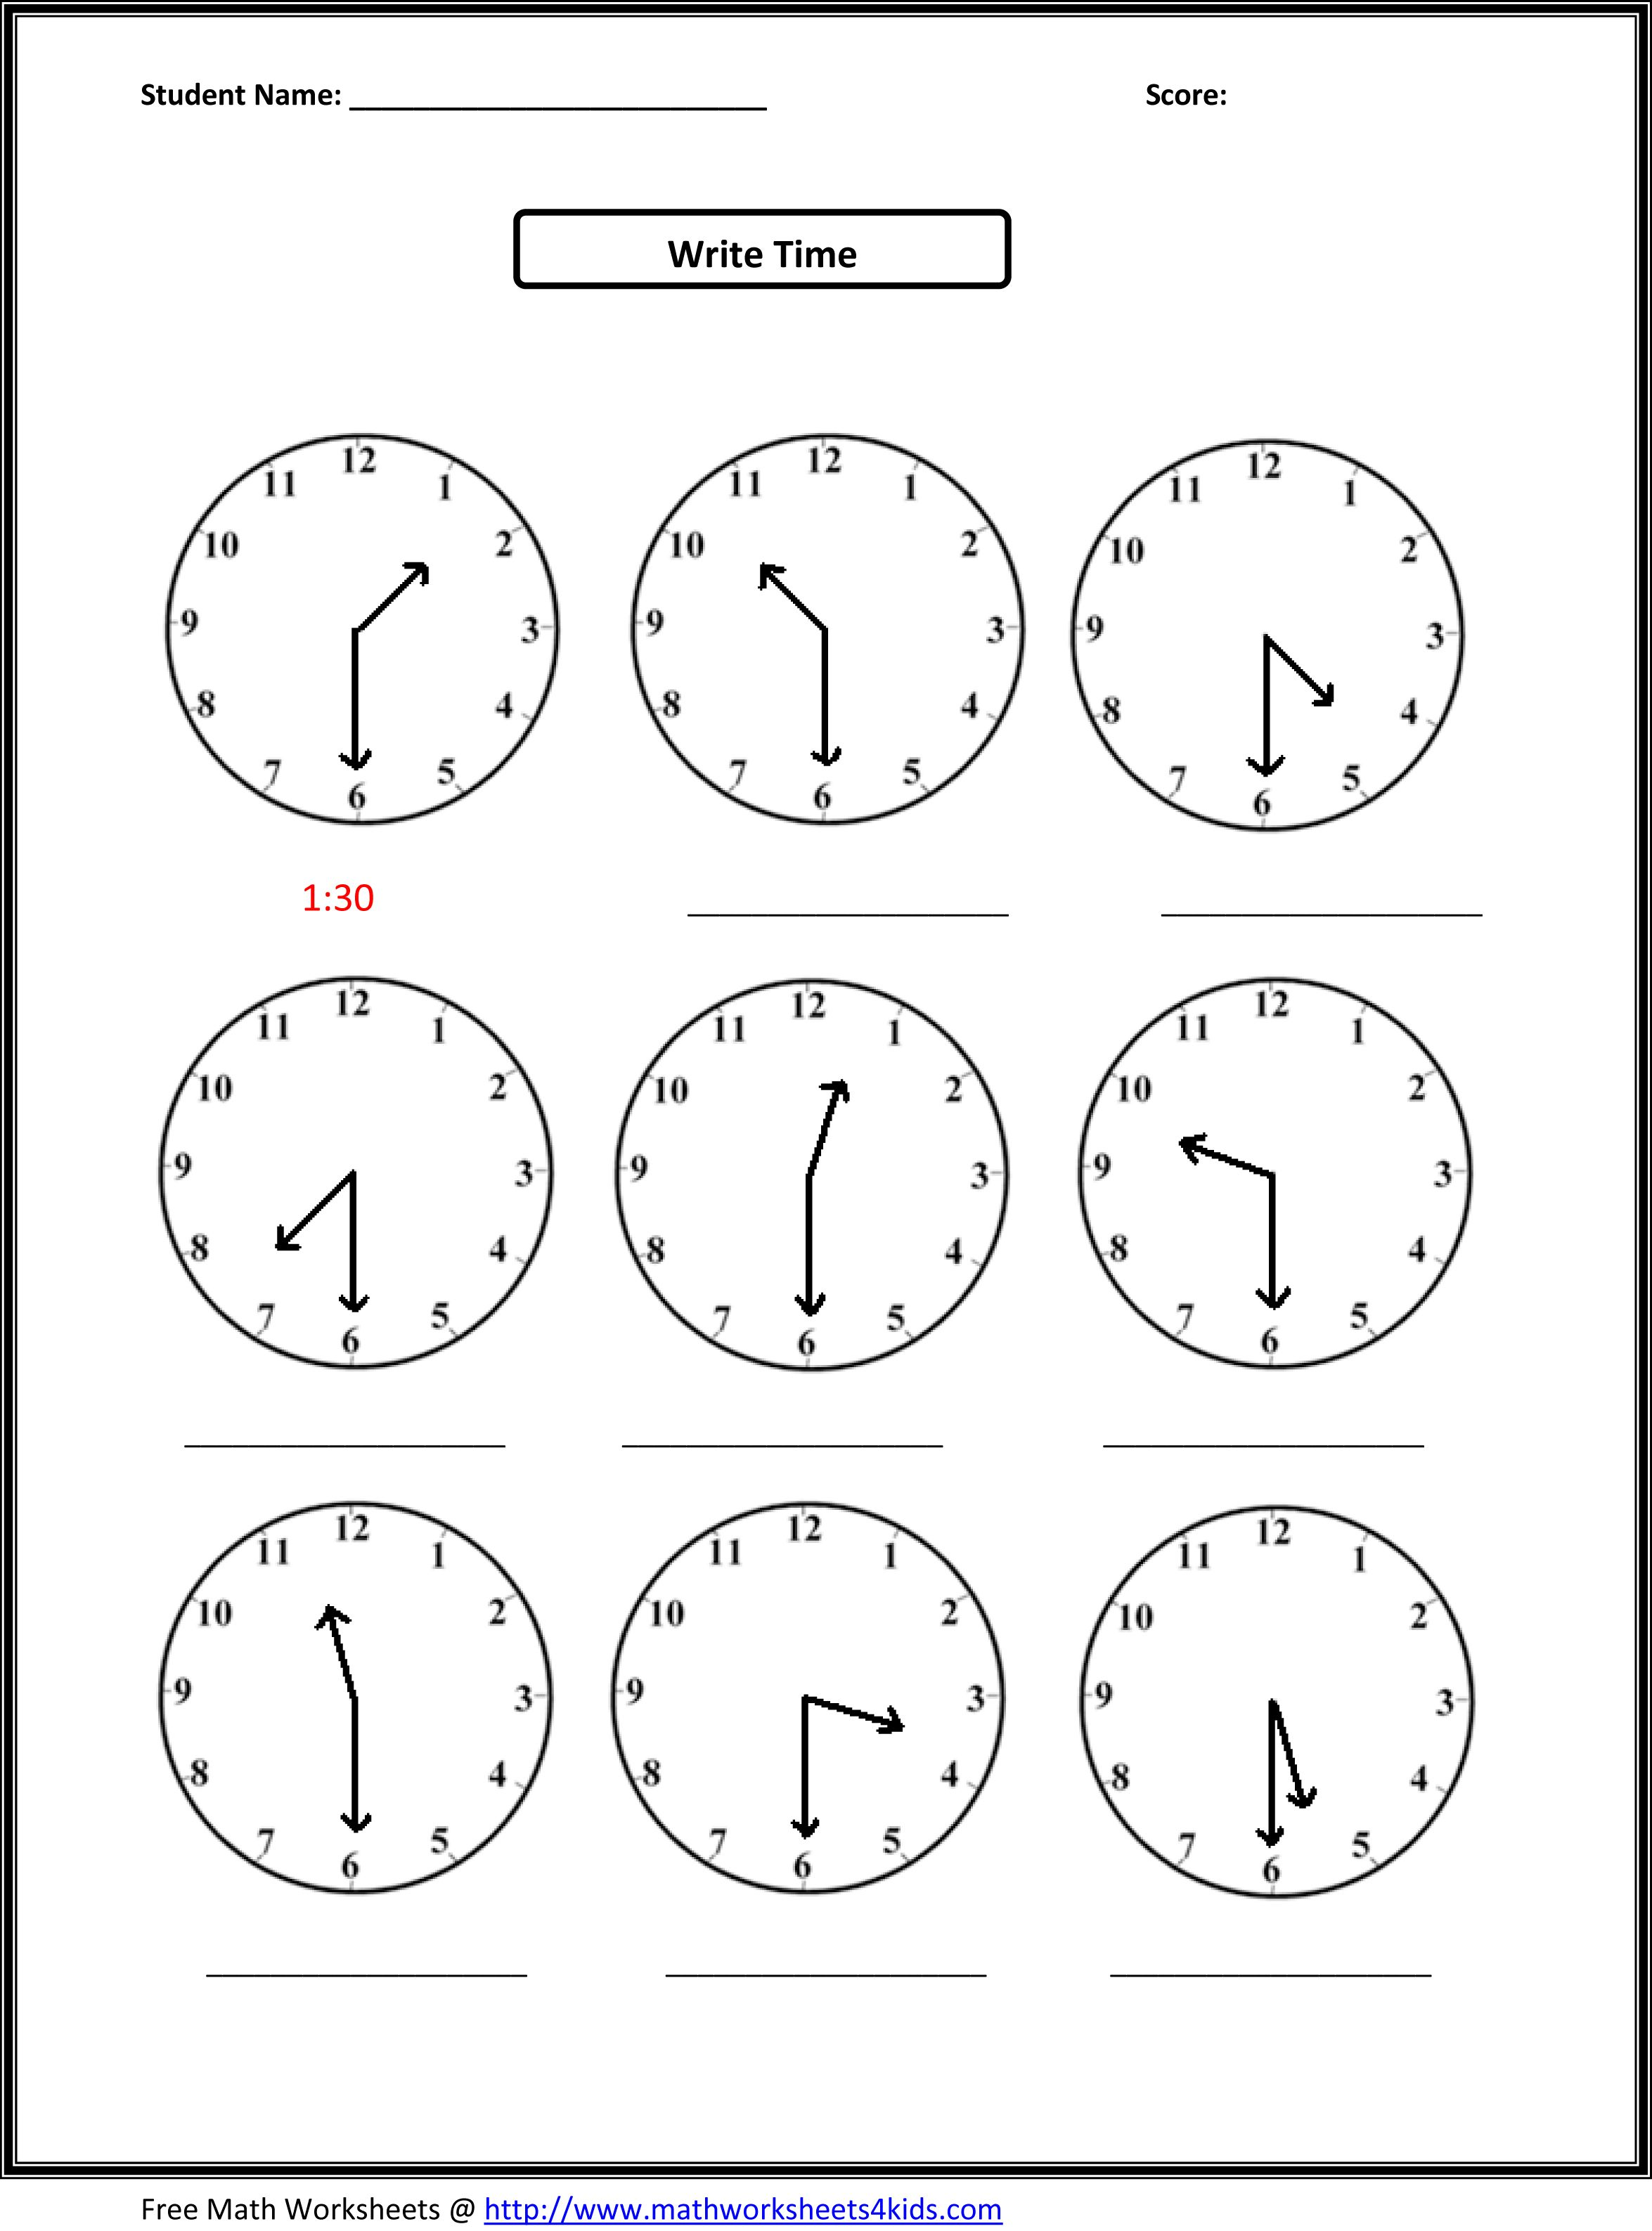 Proatmealus  Marvelous Worksheet On Time For Grade   Reocurent With Magnificent Free Printable Telling Time Worksheets Nd Grade  Reocurent With Beauteous Teaching Reading To Adults Worksheets Also Sentence Tracing Worksheets In Addition Past Tense And Present Tense Worksheets And Underline The Noun Worksheet As Well As Number Line Worksheets Year  Additionally Addition Of  Digit Numbers Worksheet From Reocurentcom With Proatmealus  Magnificent Worksheet On Time For Grade   Reocurent With Beauteous Free Printable Telling Time Worksheets Nd Grade  Reocurent And Marvelous Teaching Reading To Adults Worksheets Also Sentence Tracing Worksheets In Addition Past Tense And Present Tense Worksheets From Reocurentcom